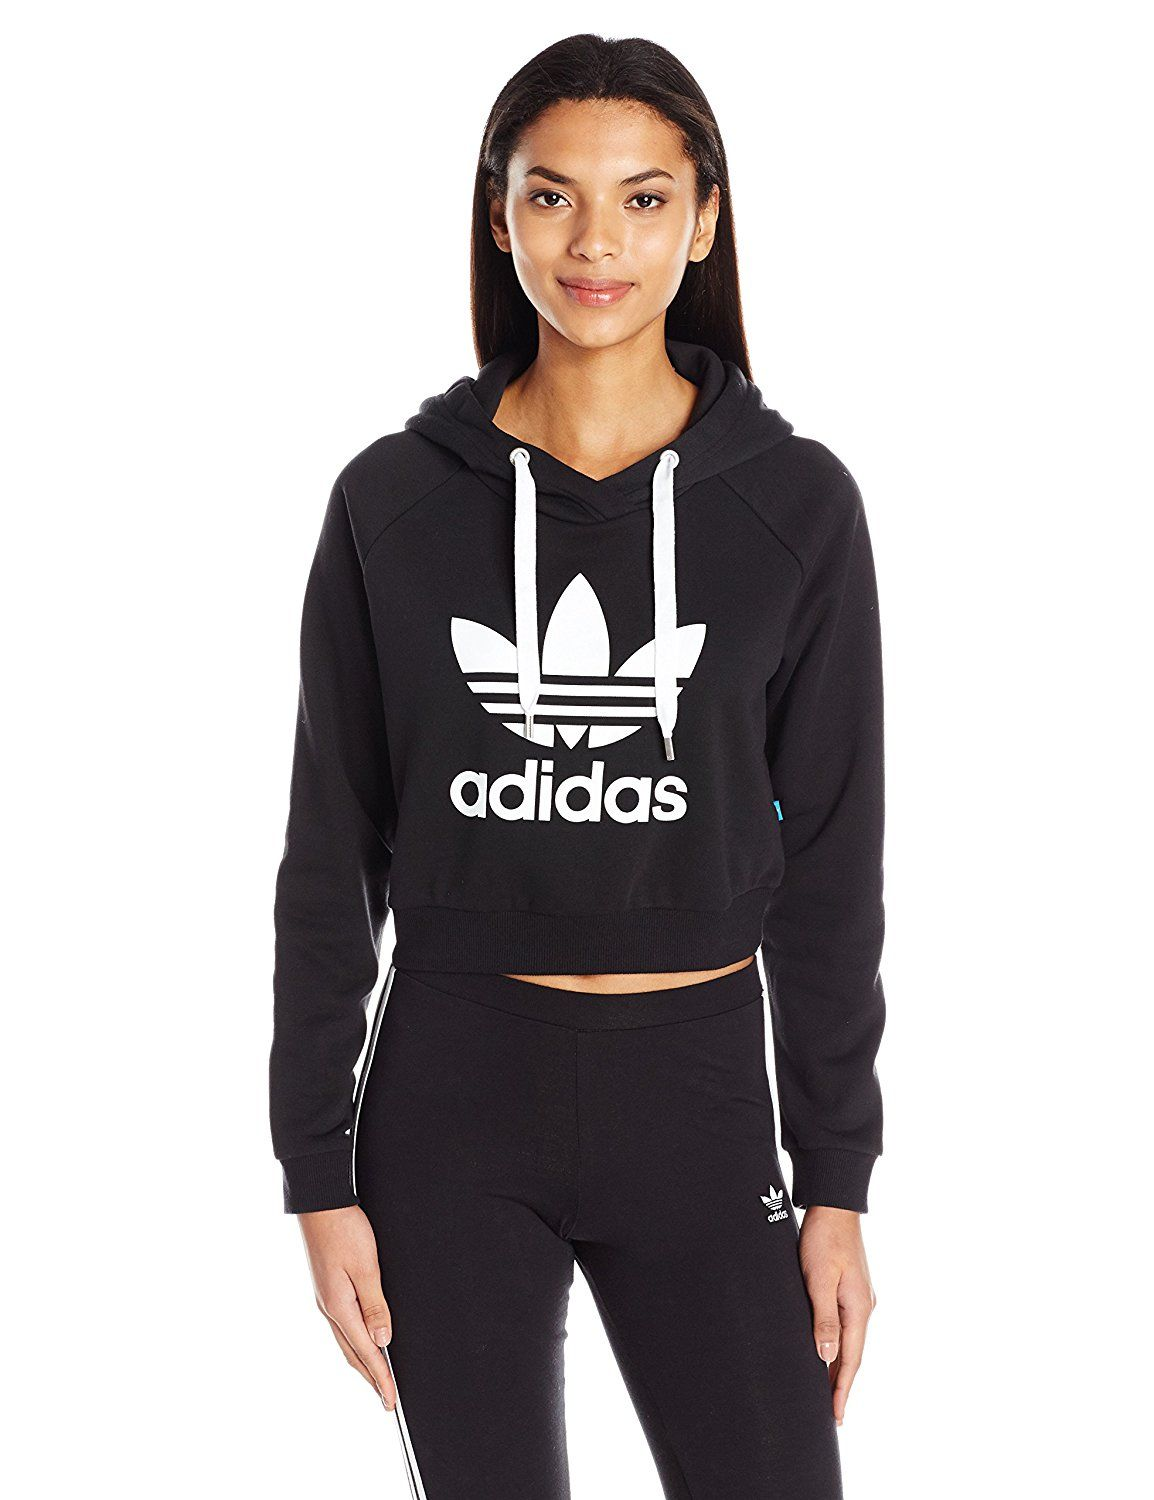 Hoodie � adidas Originals Women\u0027s Crop Hoodie at Amazon Women\u0027s Clothing  store: